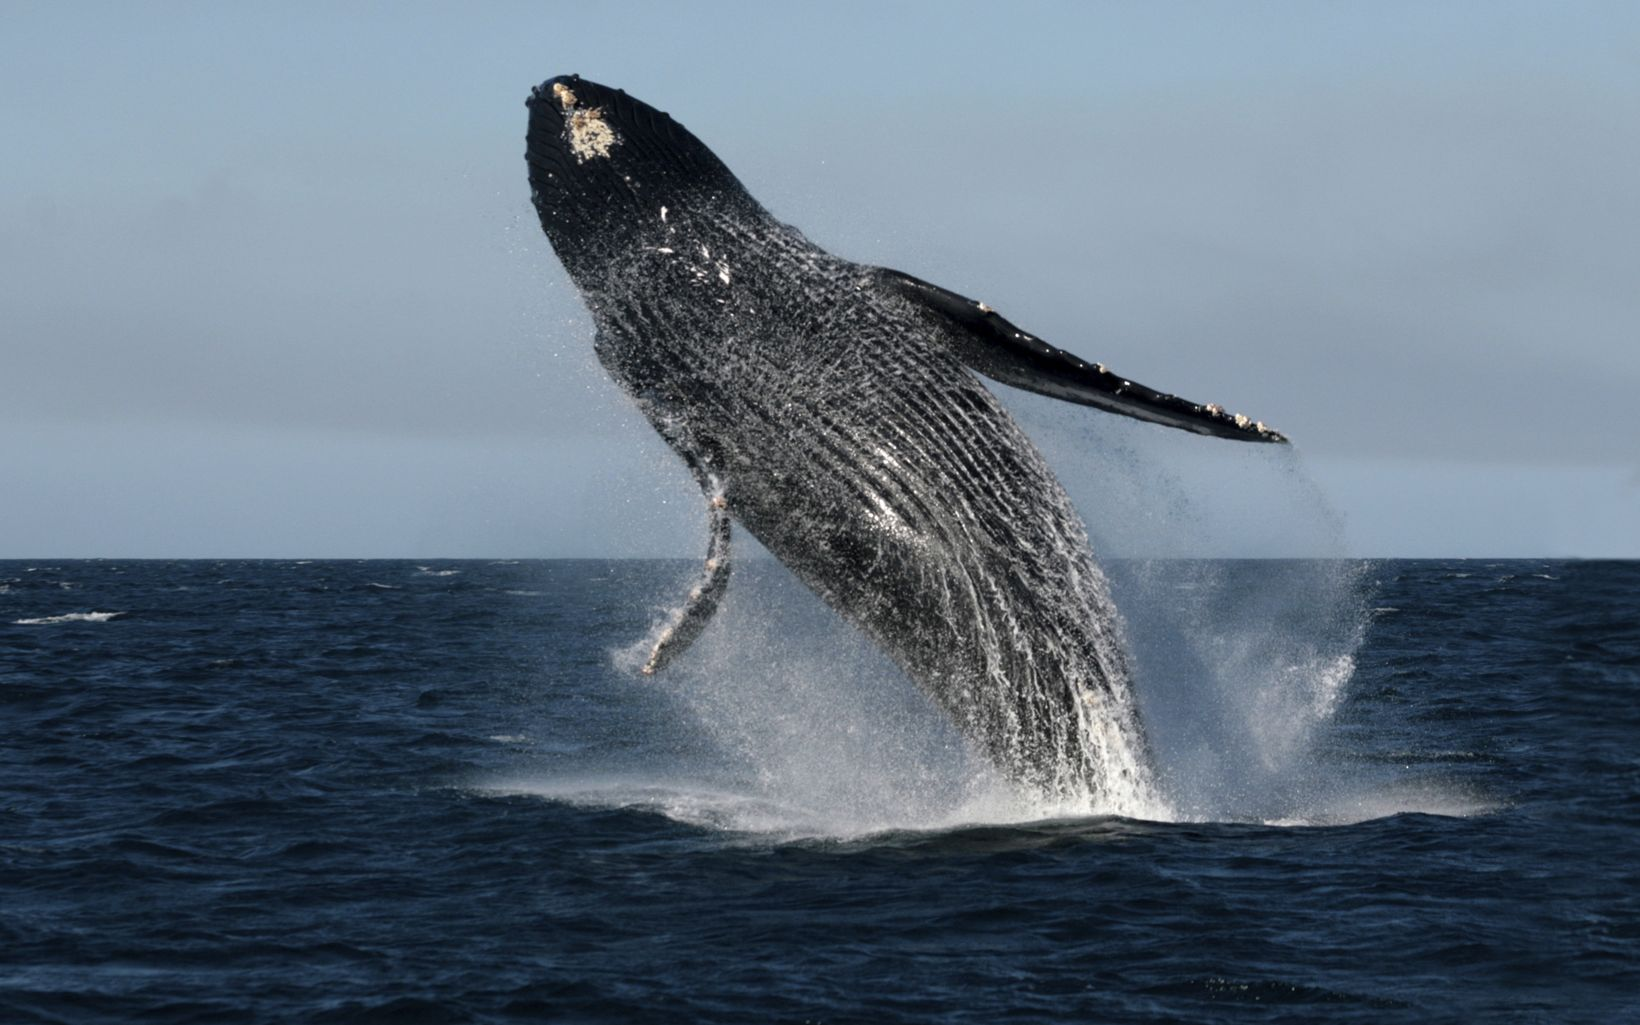 A male humpback whale (Megaptera novaeangliae) leaps acrobatically in a characteristic reproductive activity off the Pacific coast of Mexico's Baja California Peninsula.